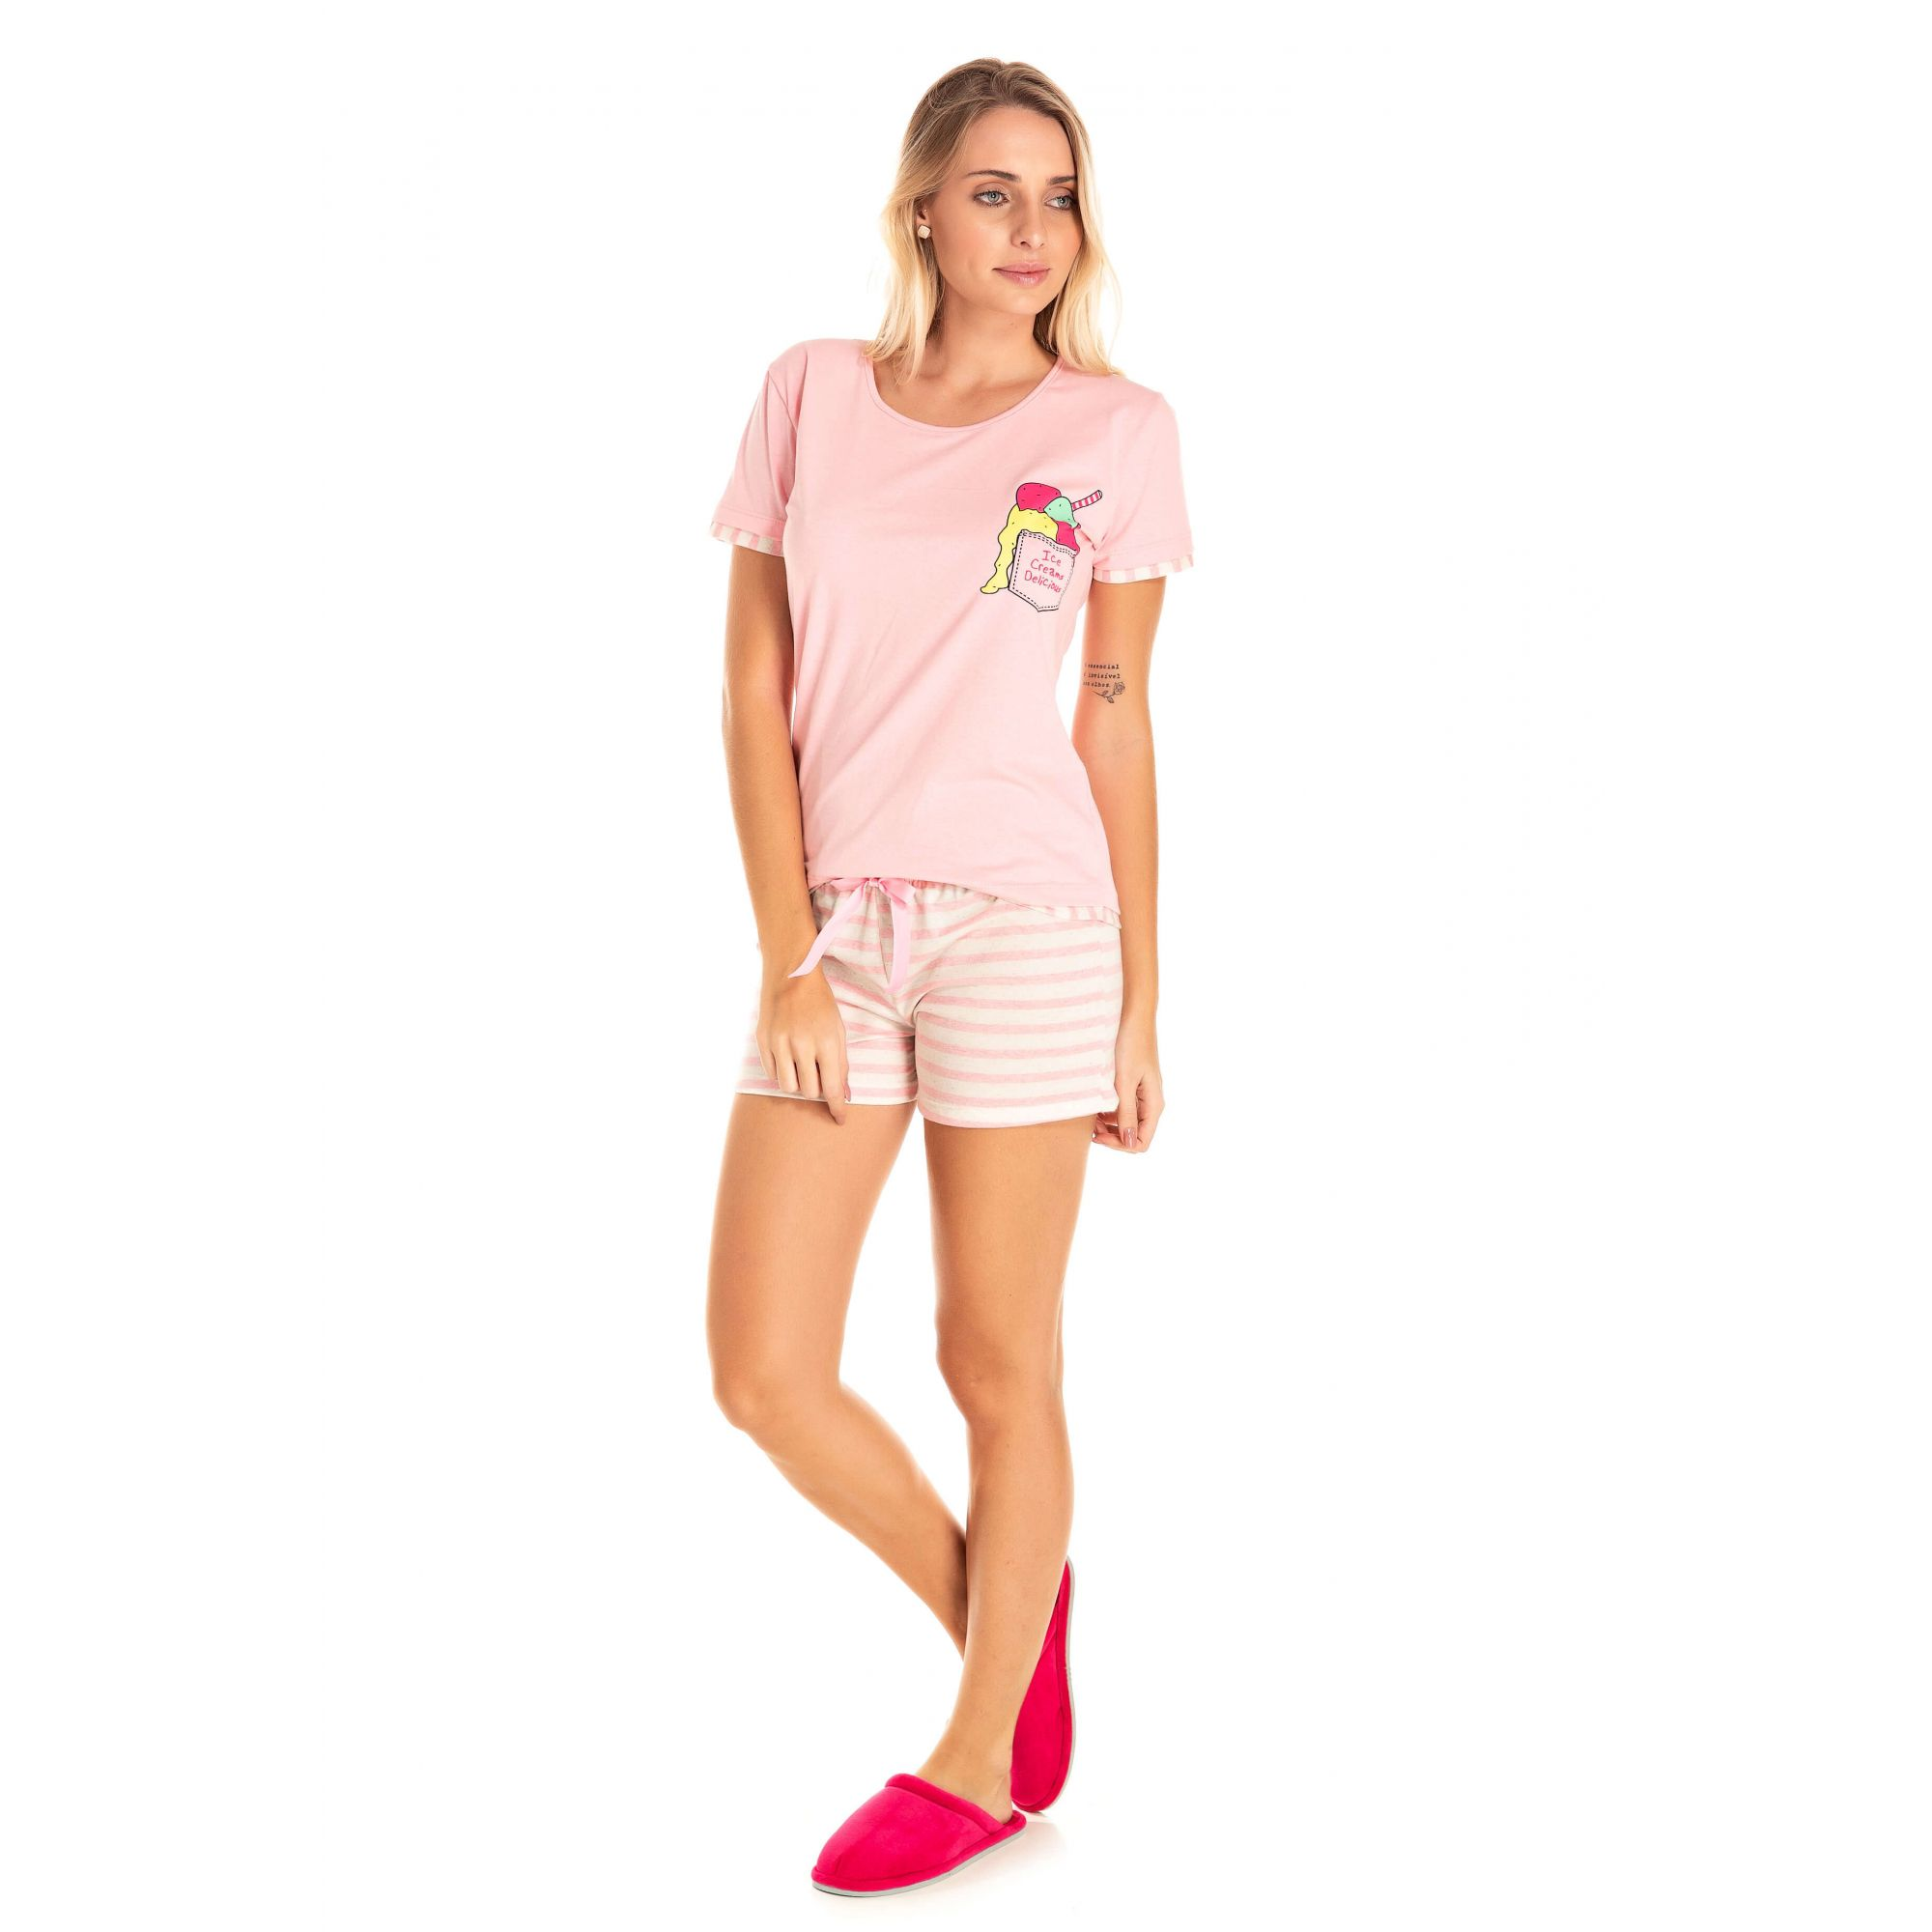 105/D - Short Doll Adulto Feminino Sorvete